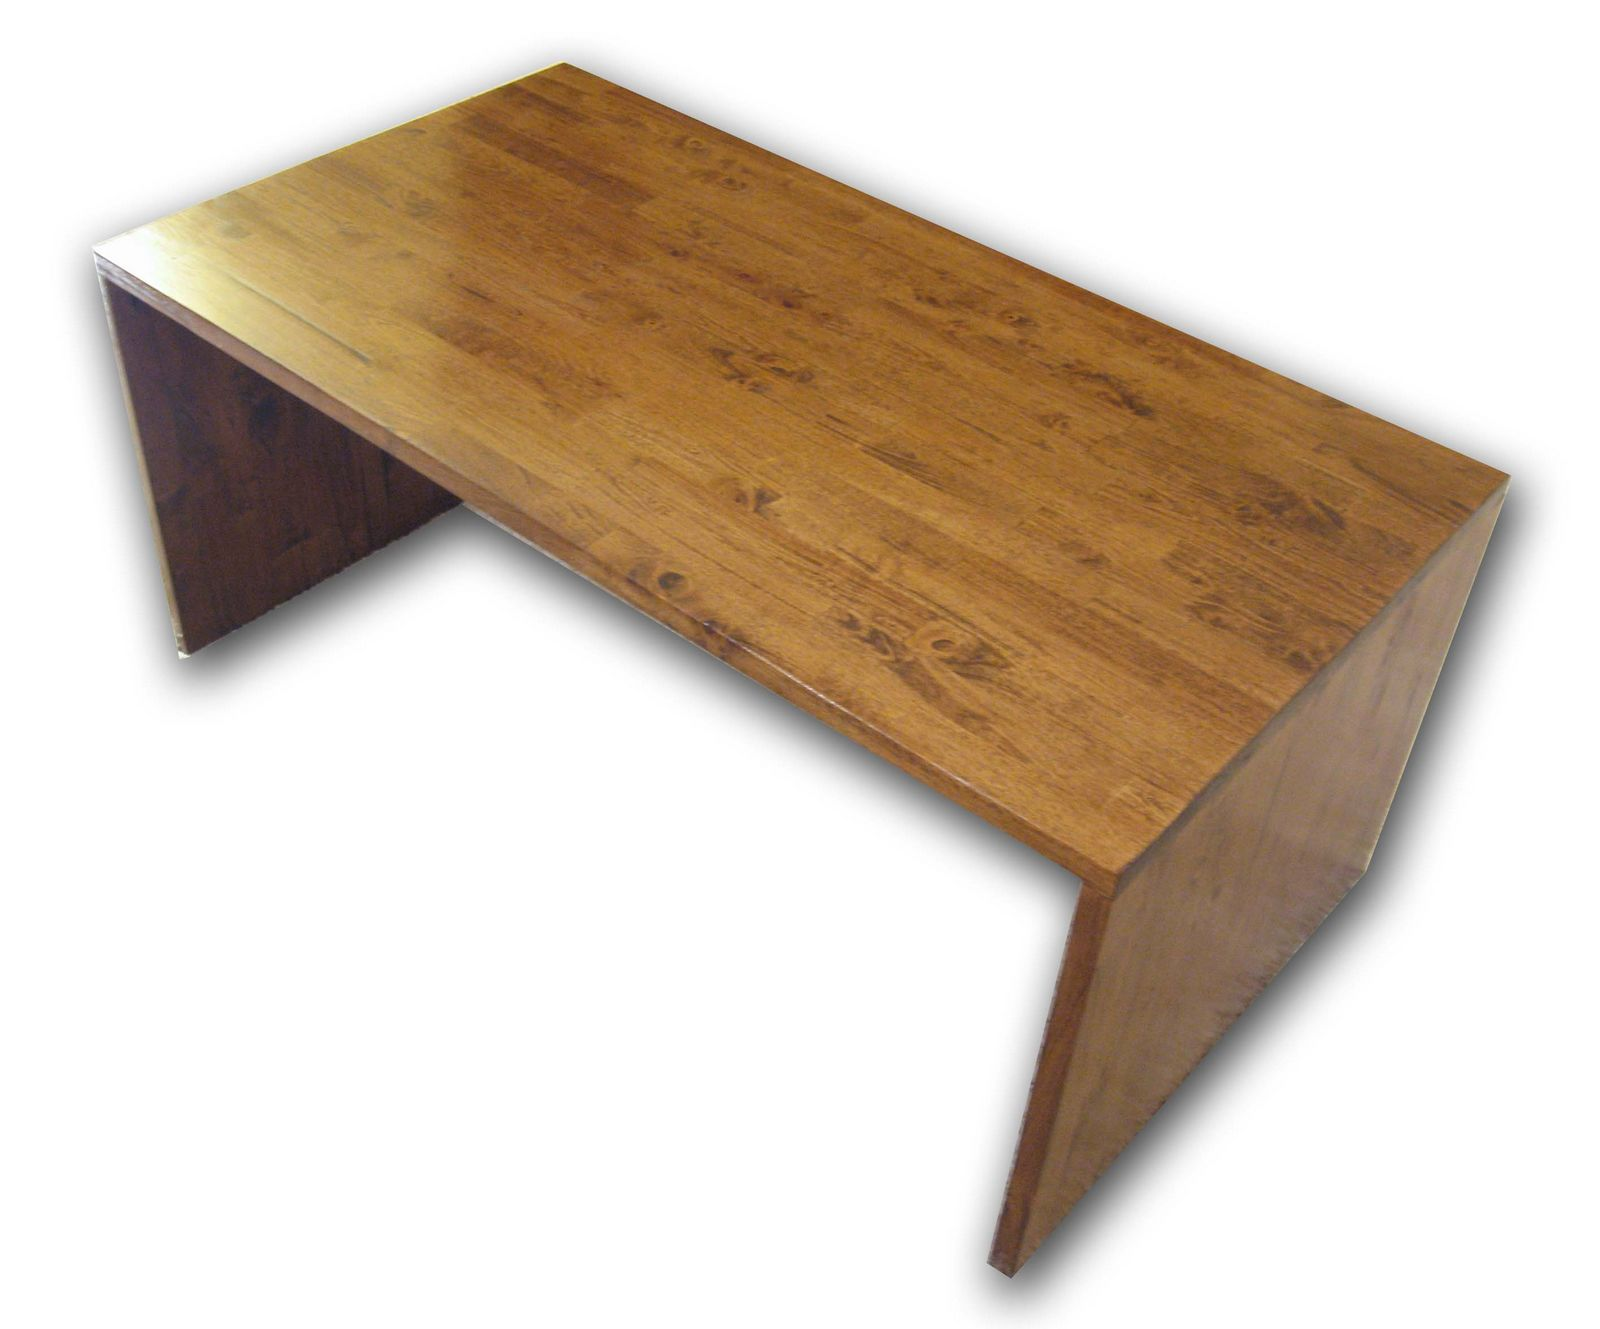 Recycled Wooden Furniture Almirah Beds